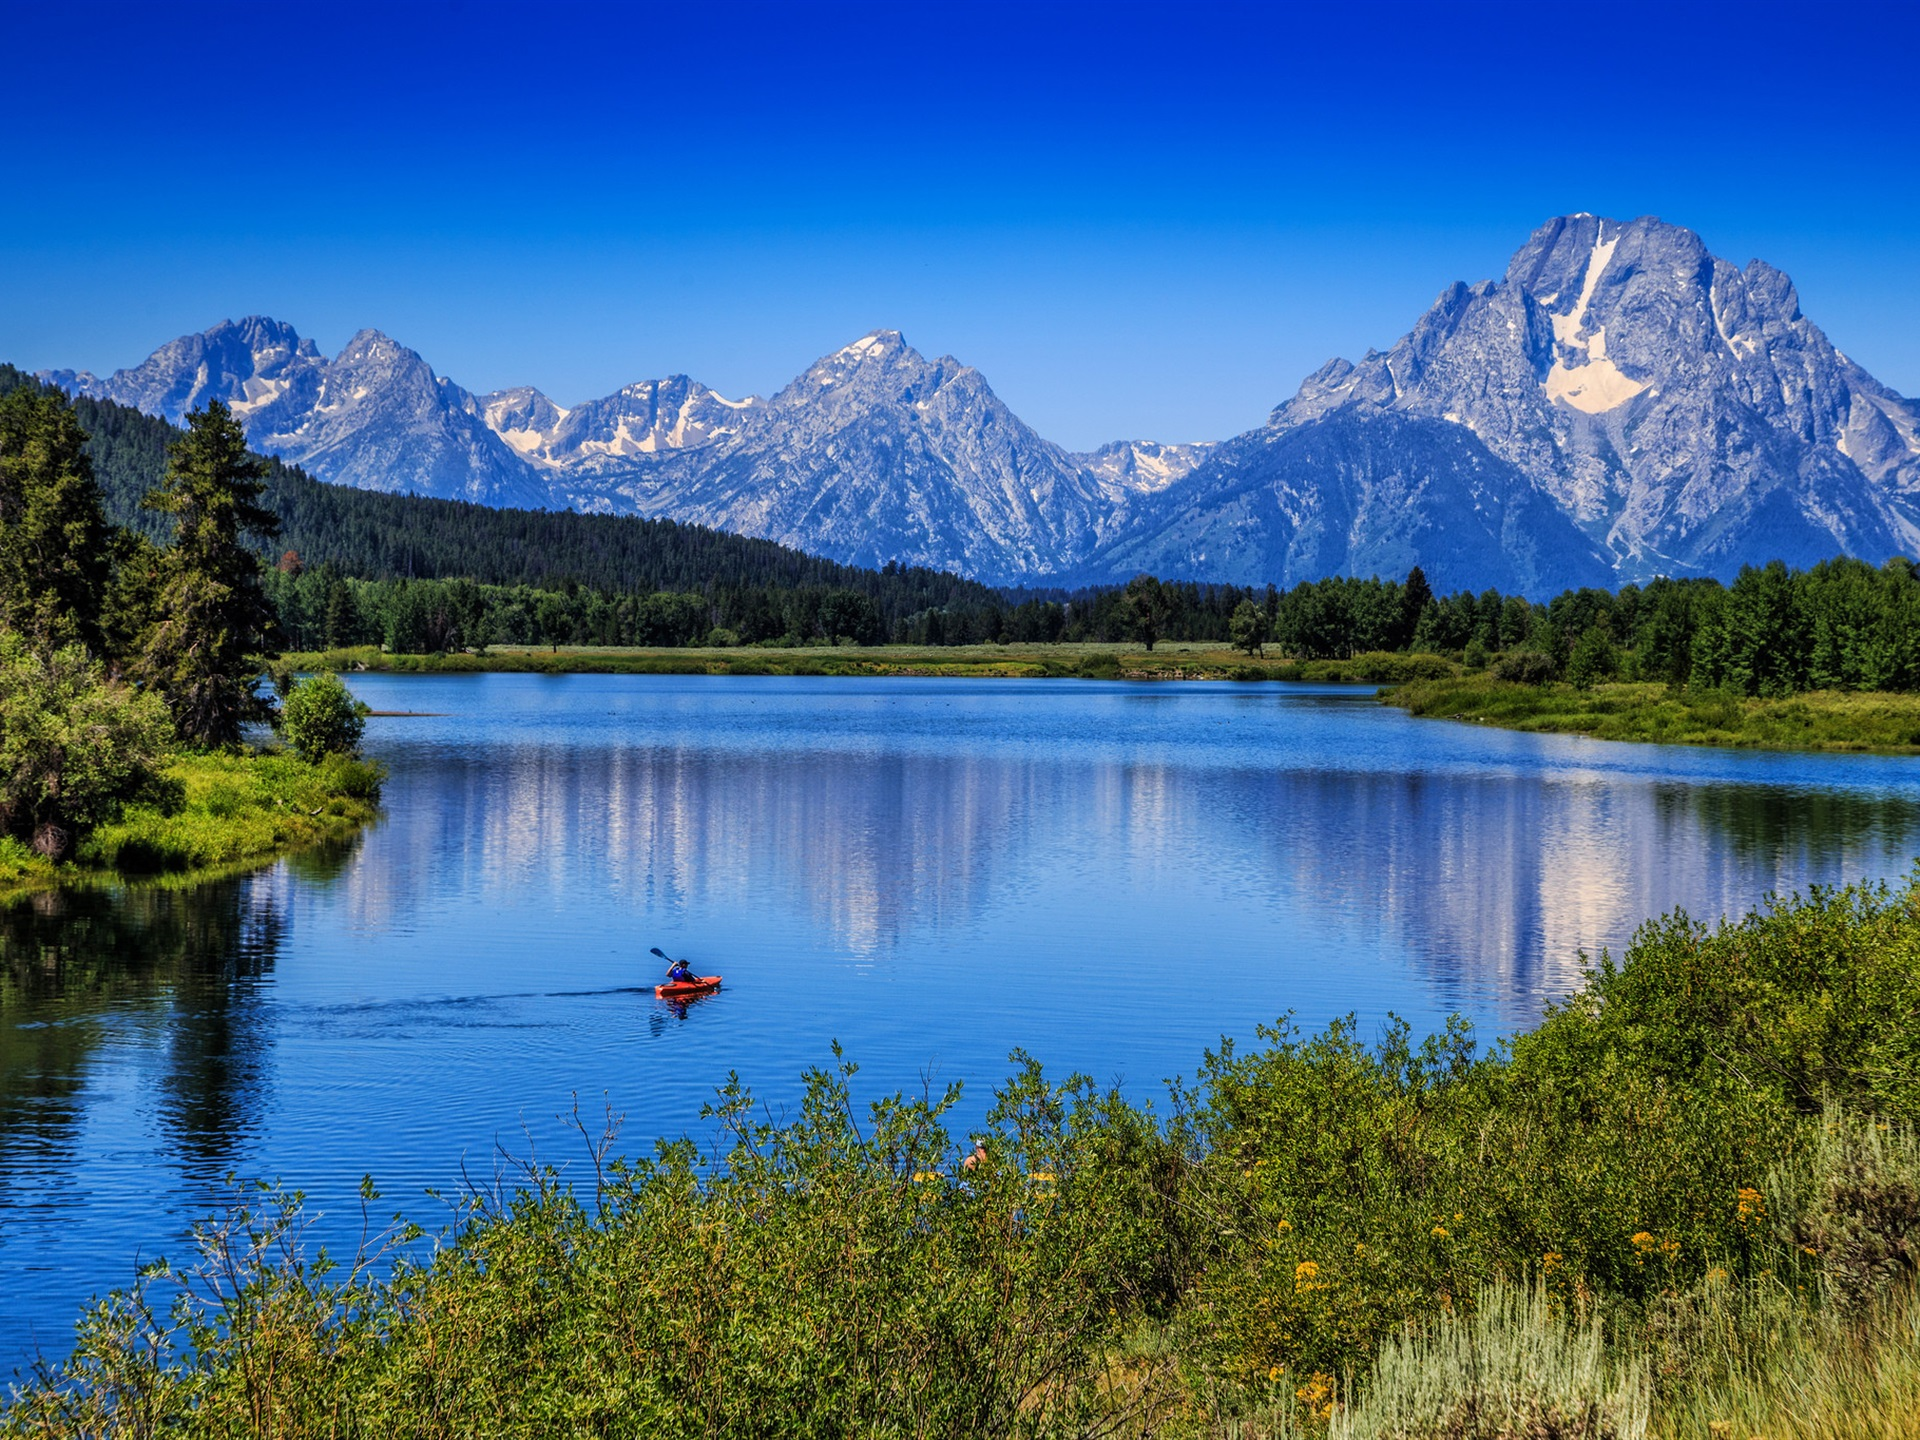 Wallpaper Mountains trees blue sky river boat 1920x1440 HD 1920x1440